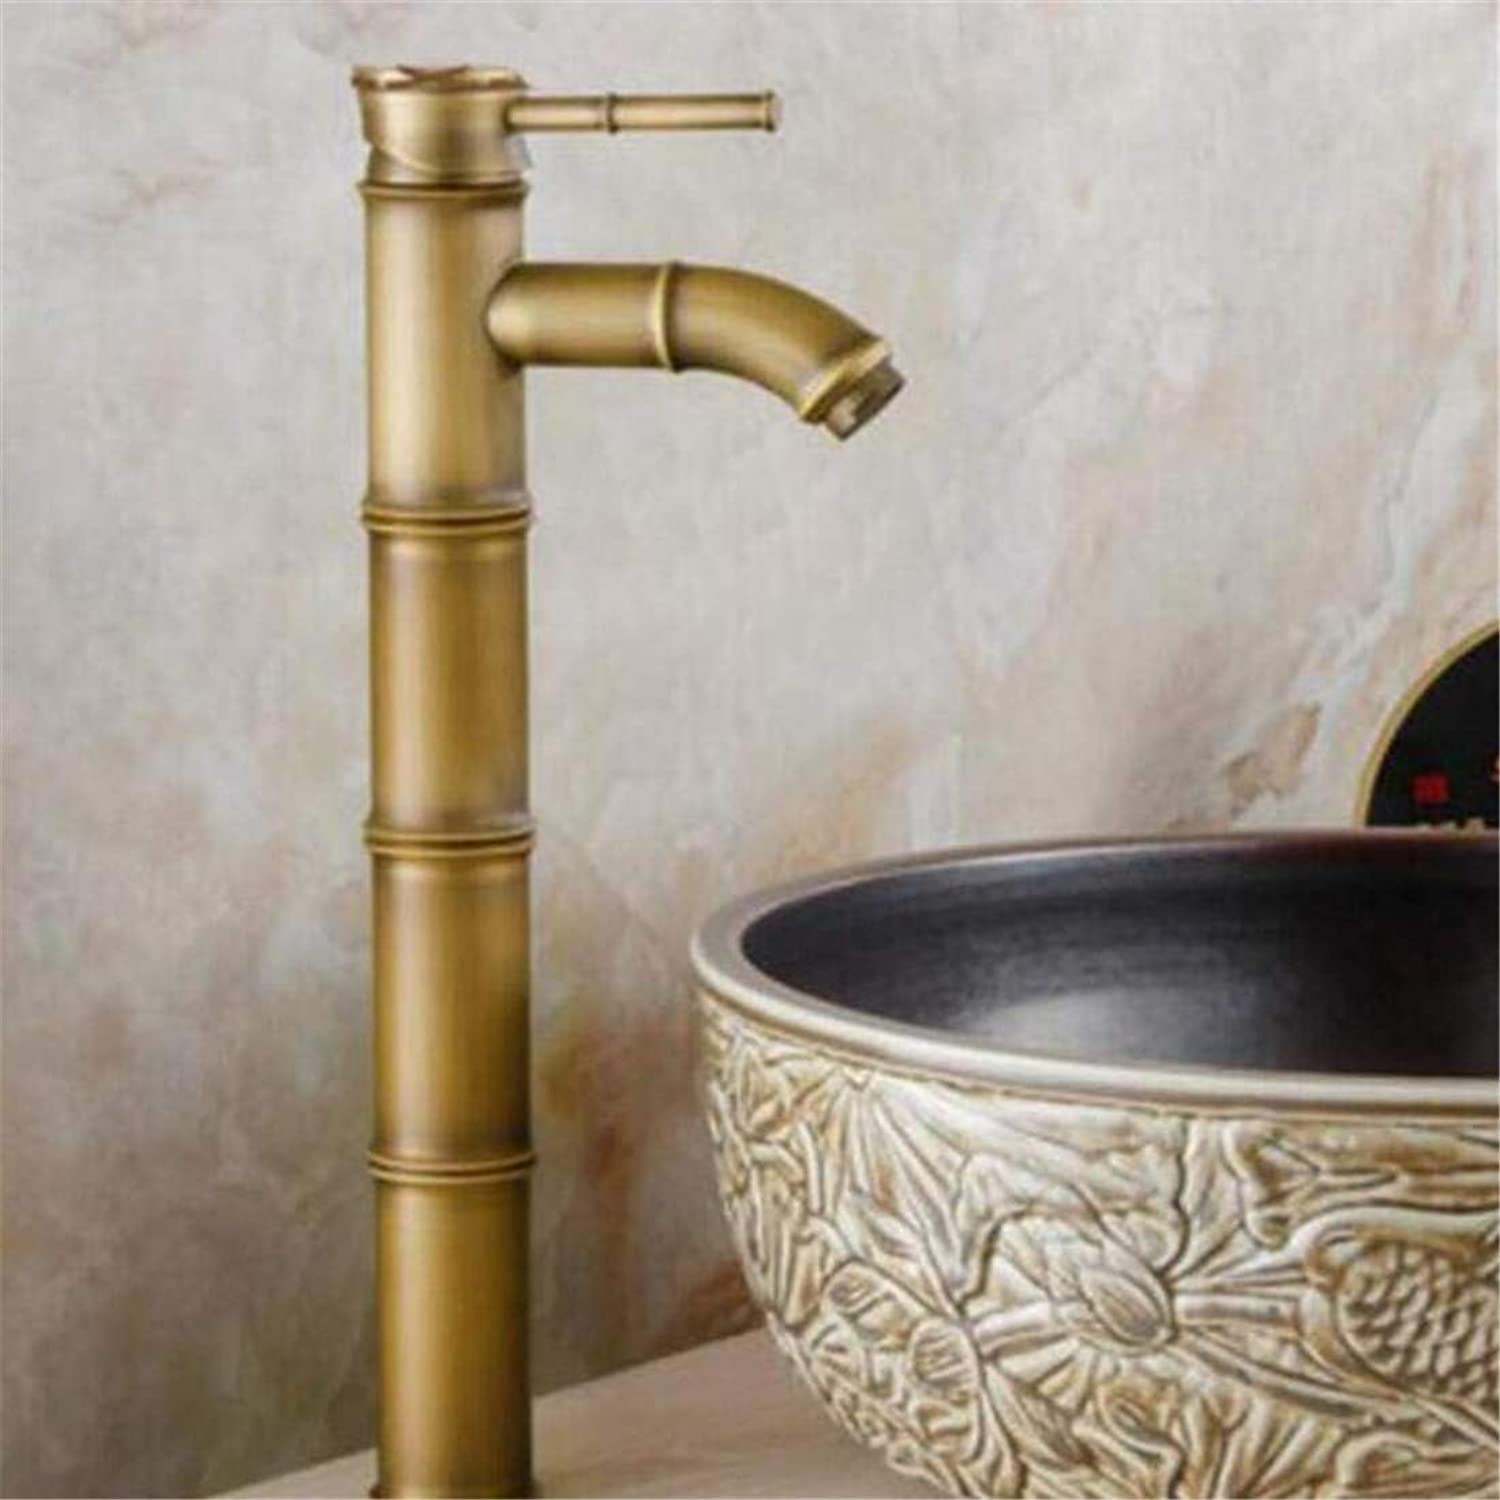 Faucet Vintage Plated Deck Mounted Faucet Faucet Washbasin Mixer Water Tap Antique Brass Bathroom Faucet Hot and Cold Luxury Wash Basin Faucet